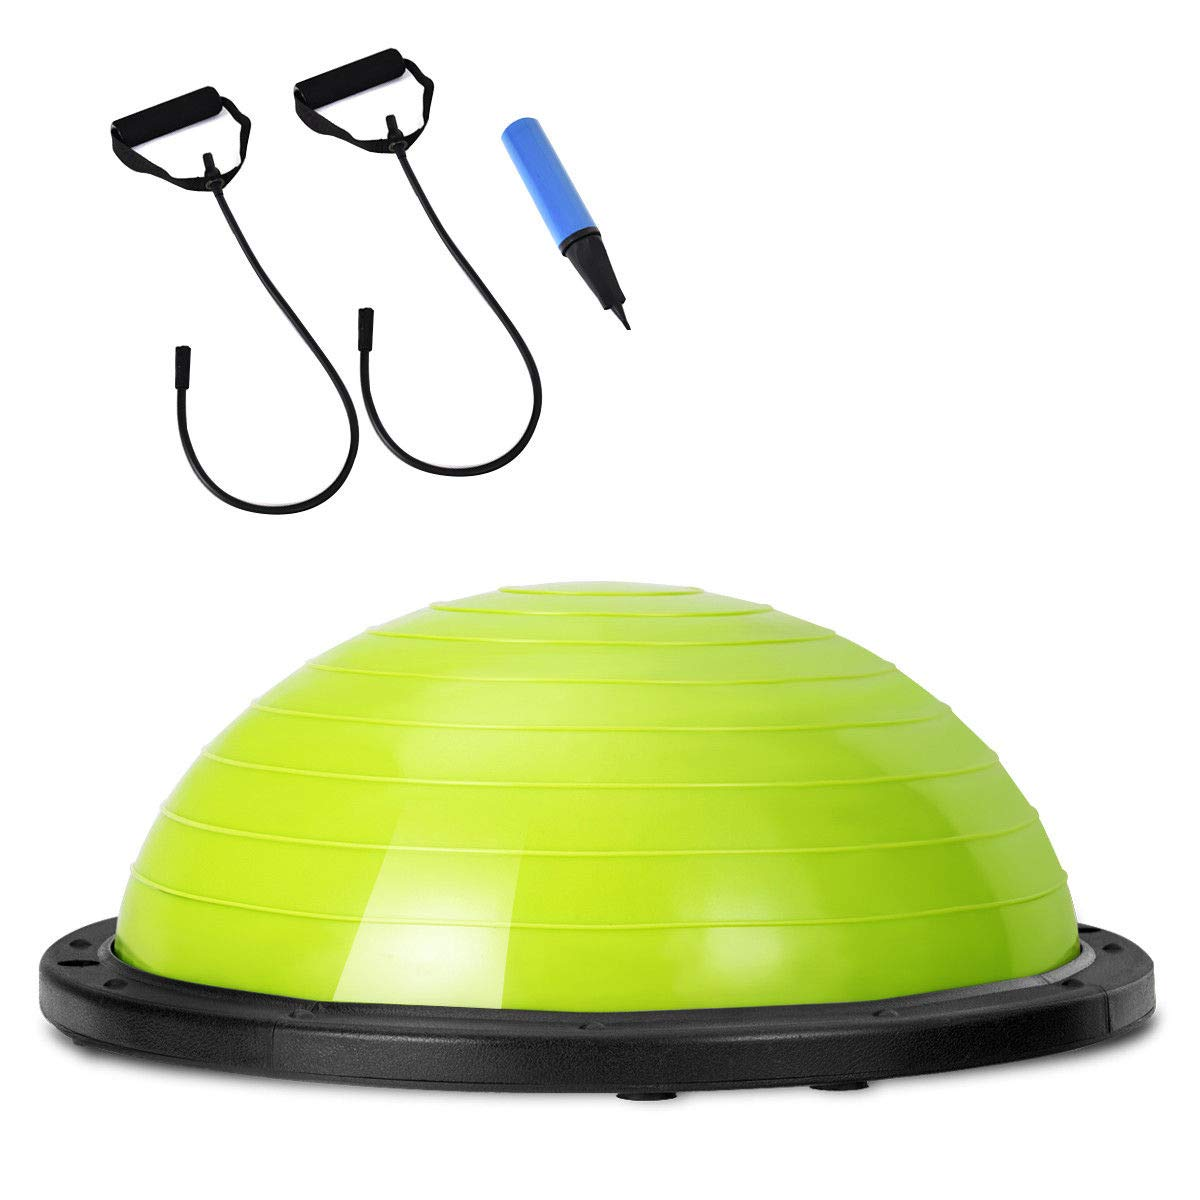 Giantex 23'' Yoga Ball with Pump Balance Fitness Trainer Home Exercise Training Balance Boards (Green)